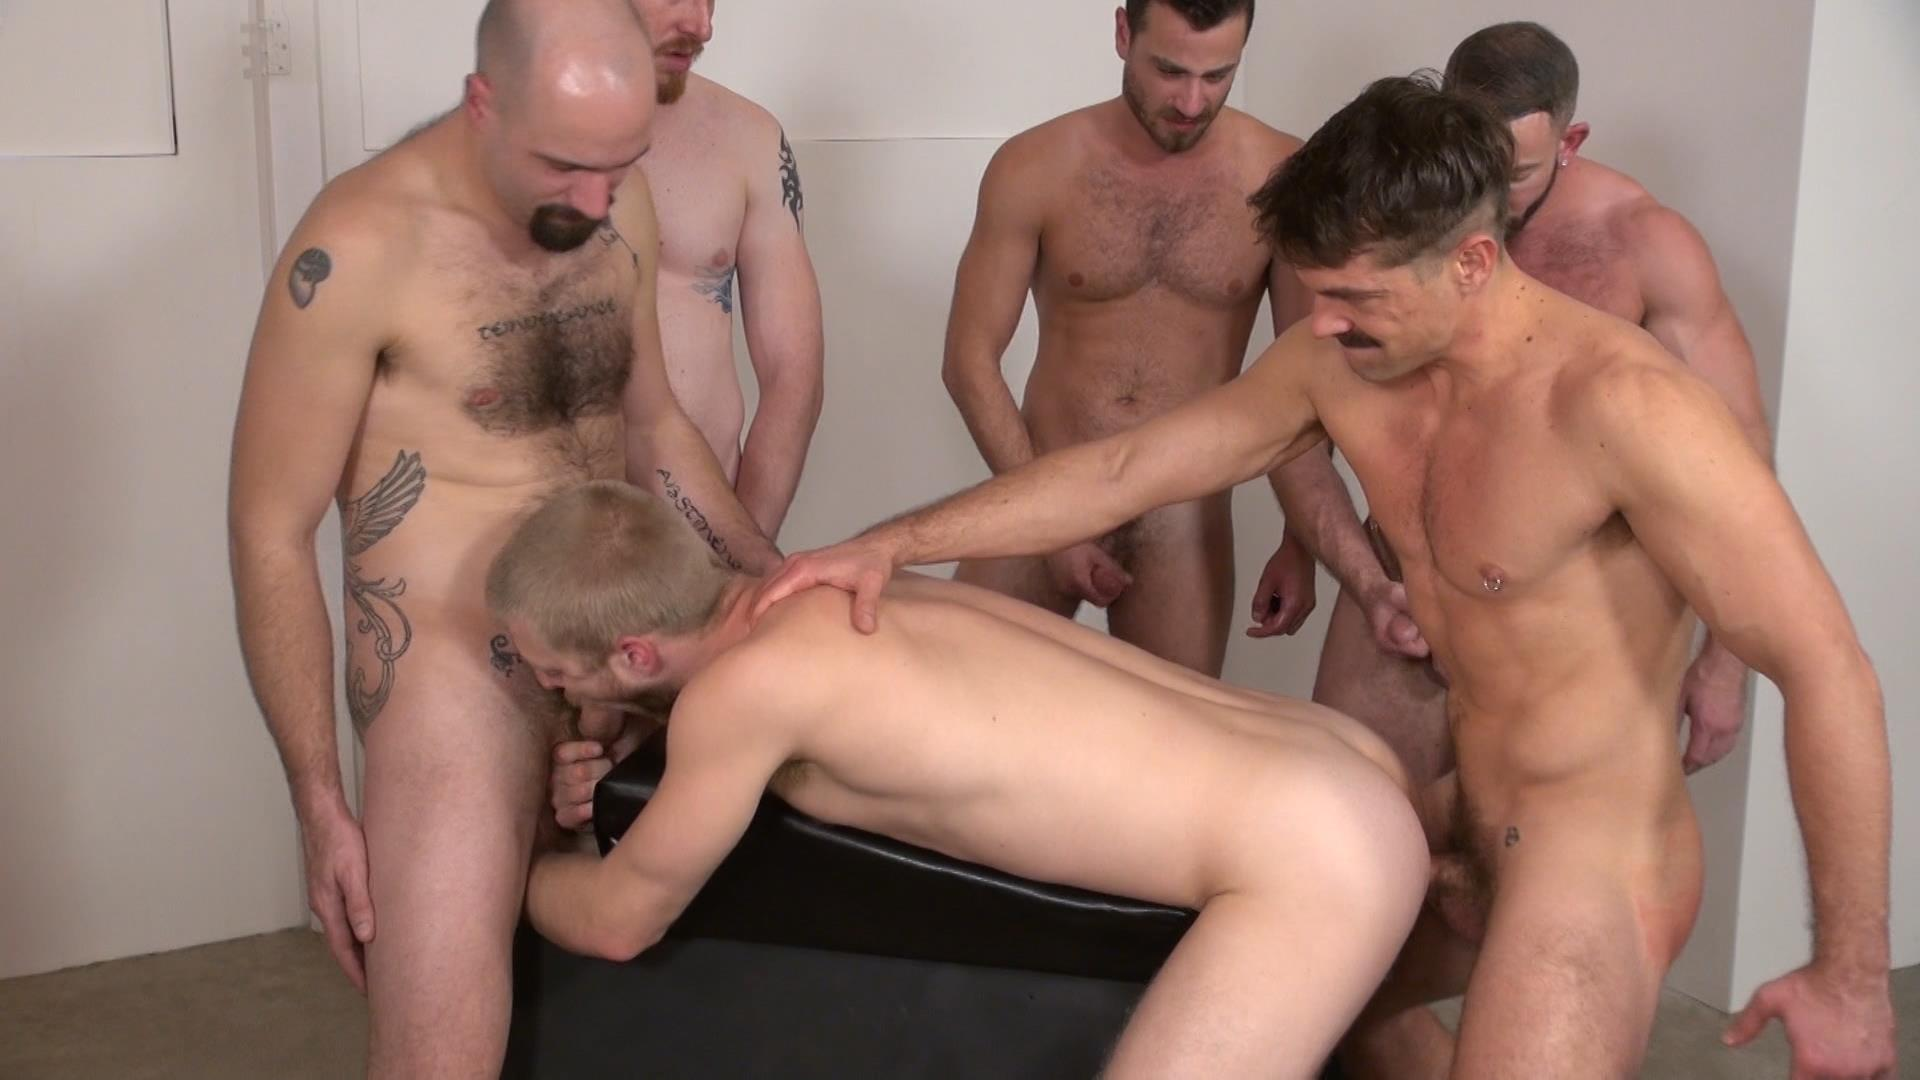 Raw-and-Rough-Bareback-Gay-Sex-Orgy-Amateur-Gay-Porn-01 Six Hairy Hung Guys Pounding A Bottom At A Bareback Sex Party